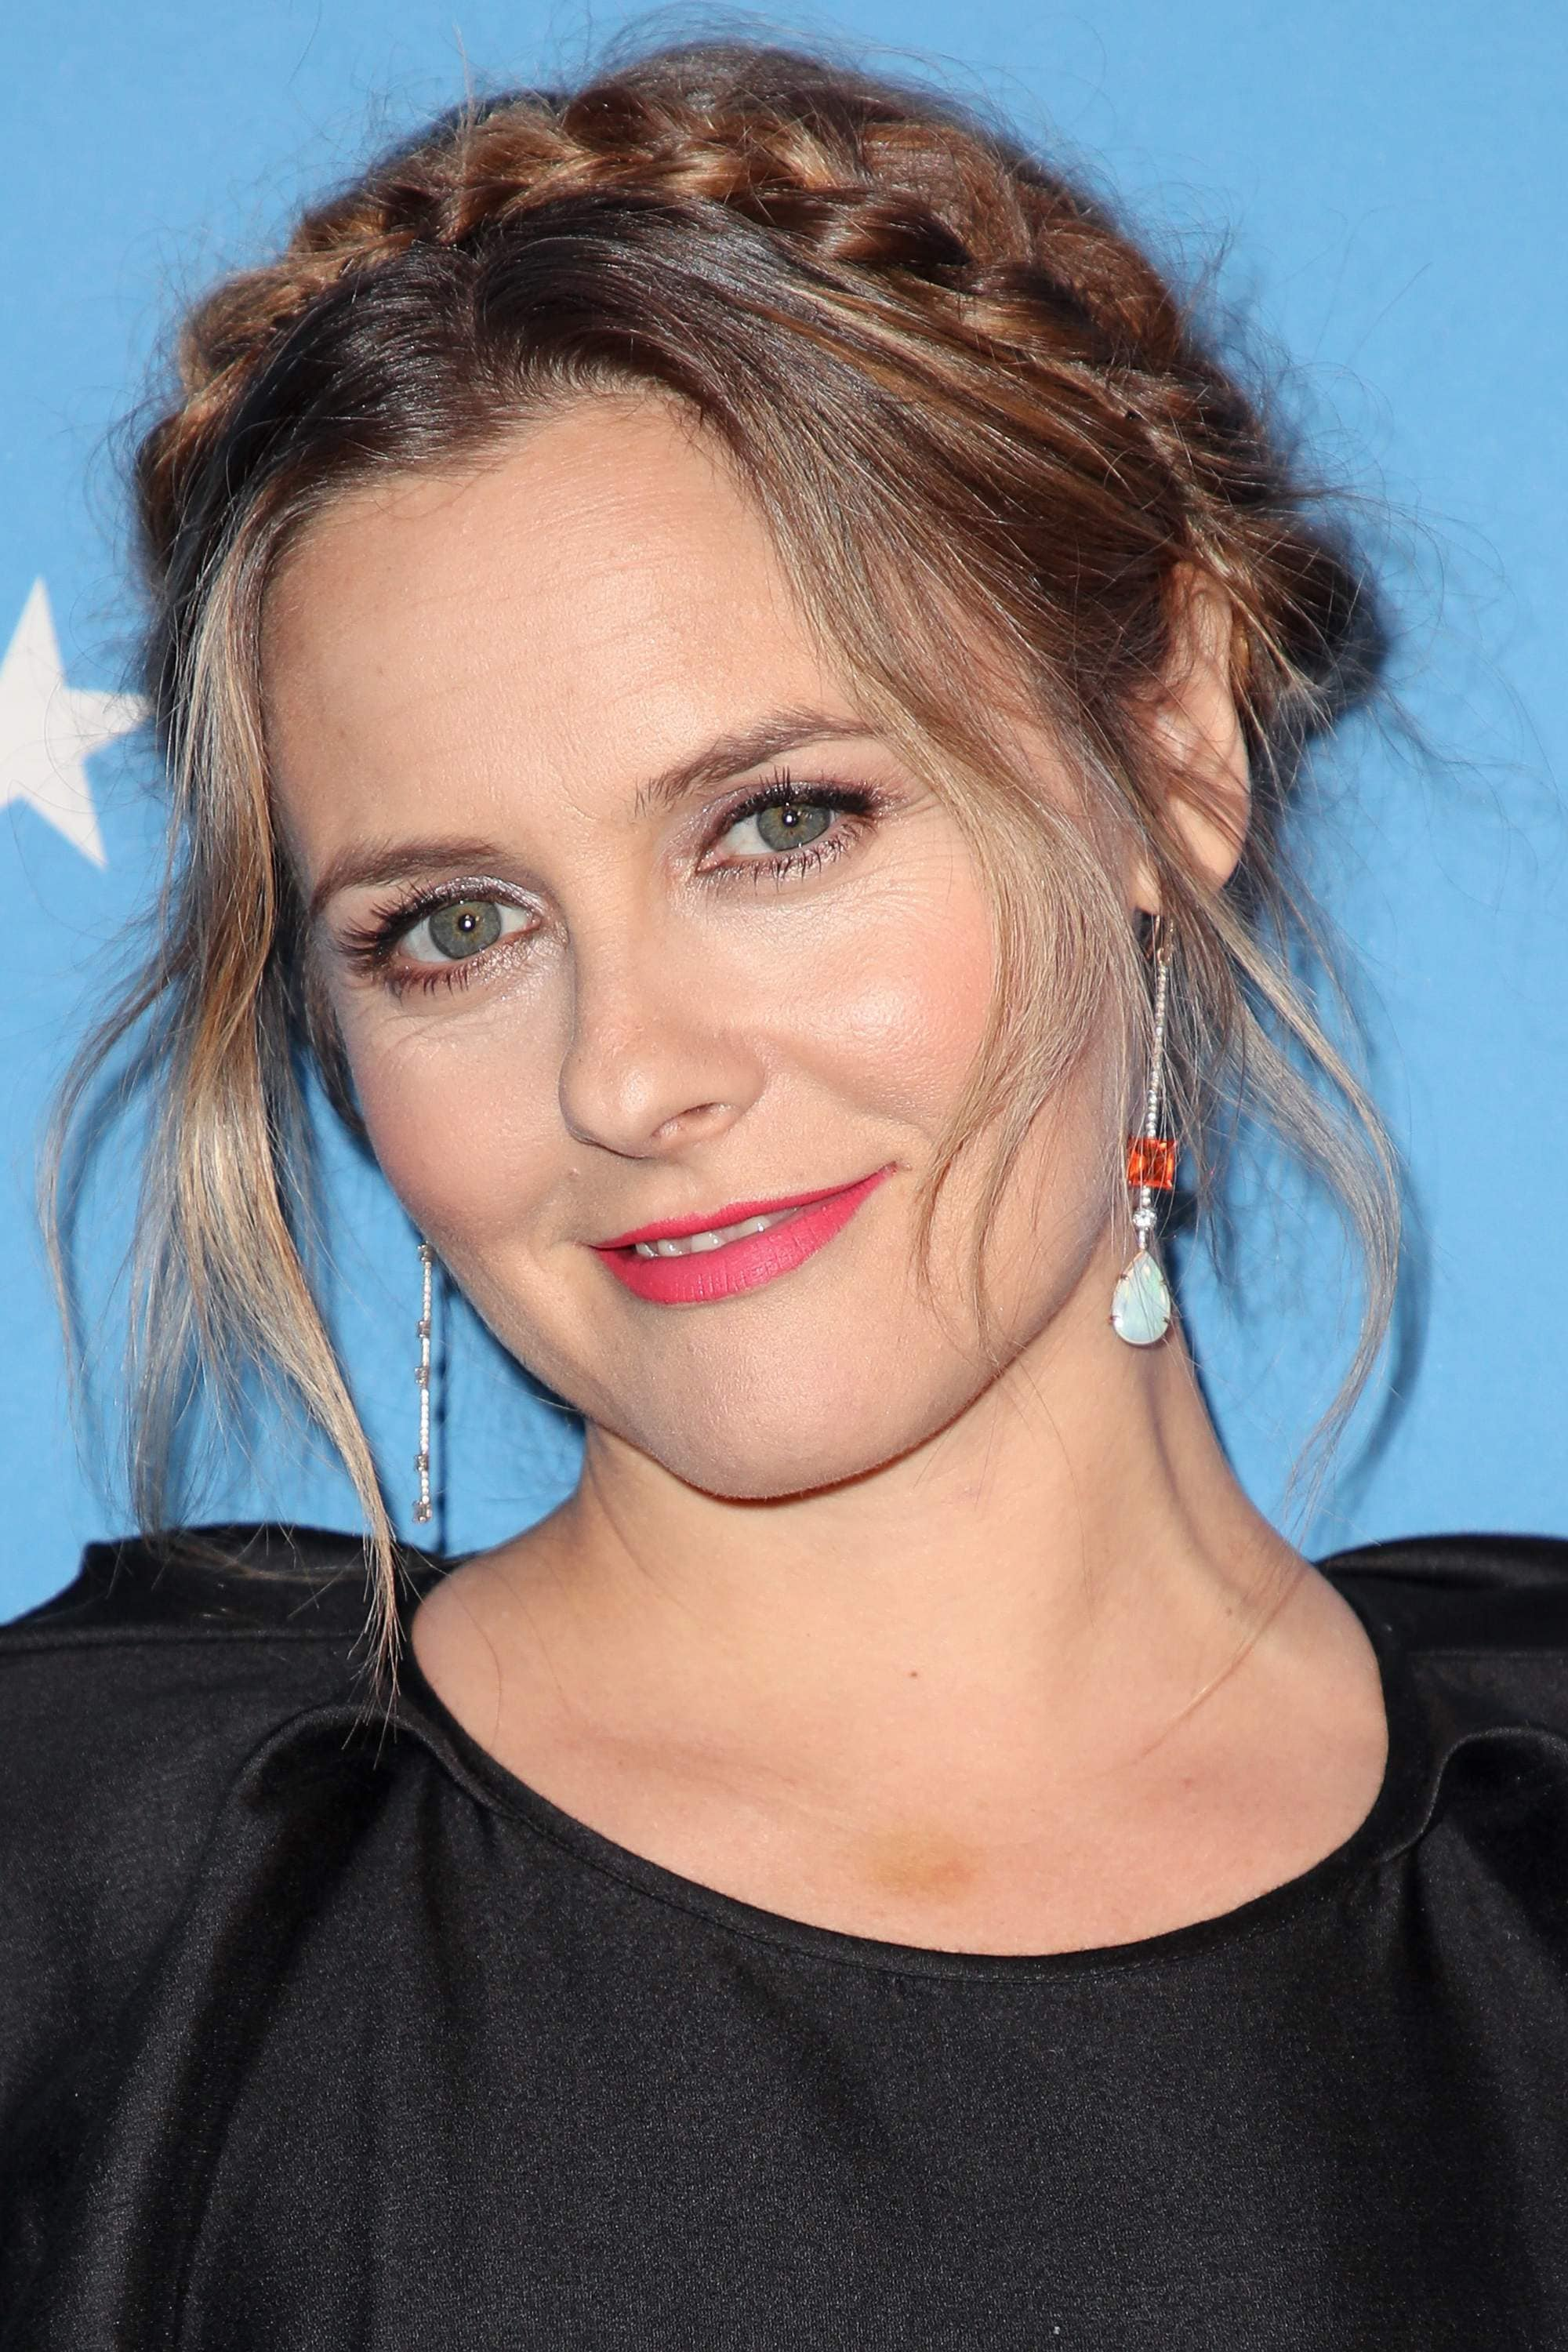 prom updos: actress Alicia Silverstone with her light brown hair in a wispy milkmaid braid style